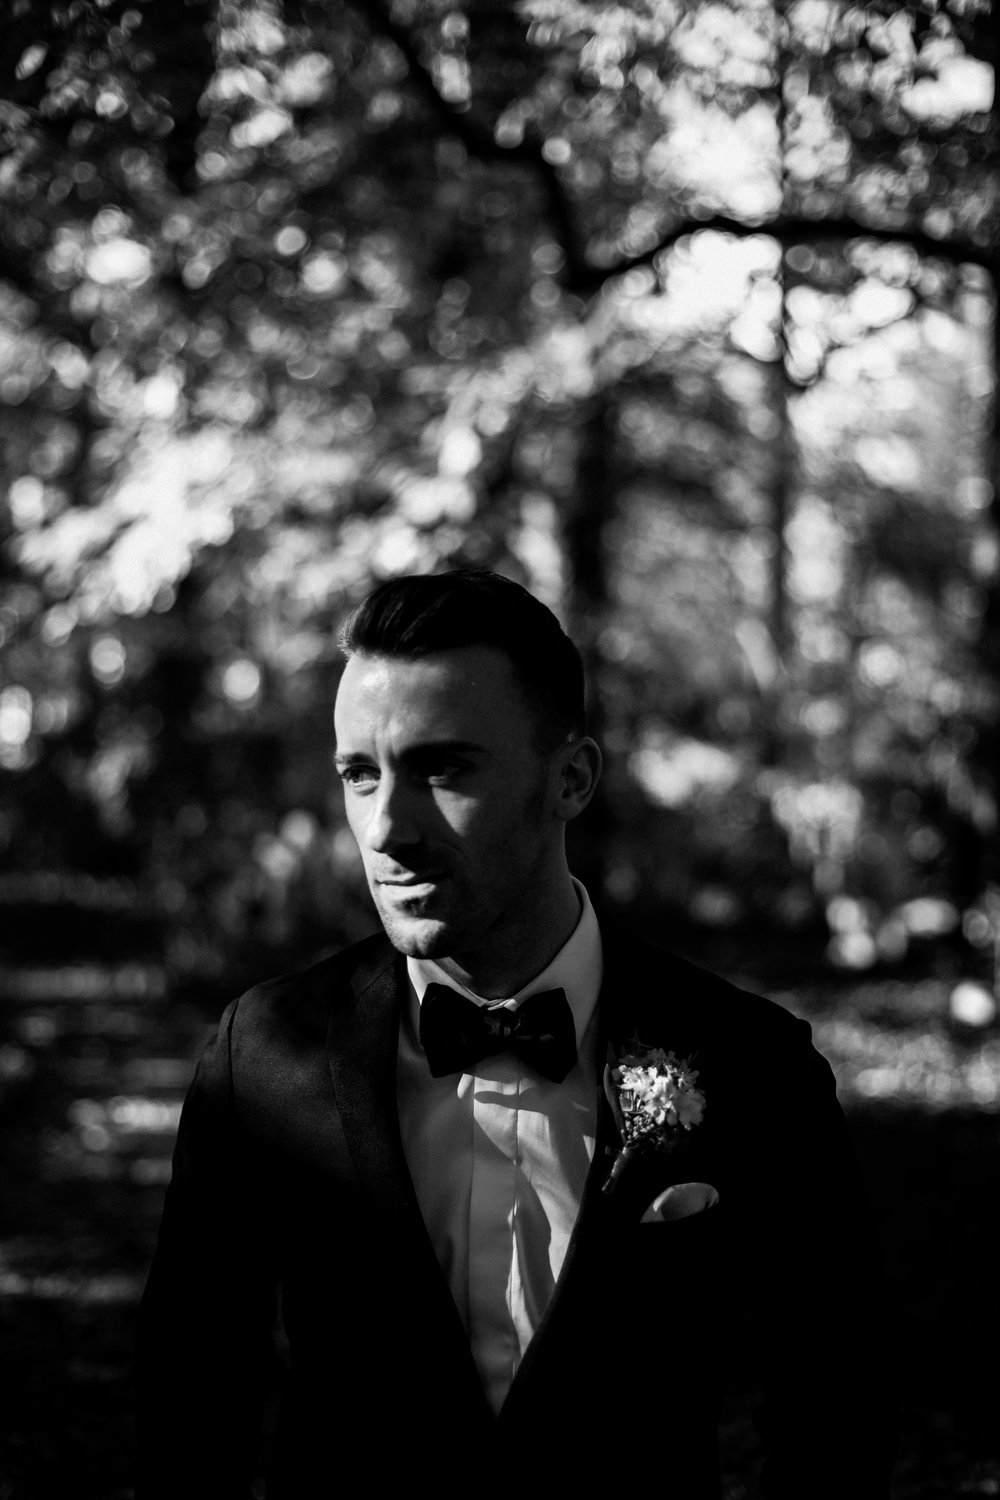 hudson-valley-same-sex-wedding_1203.jpg